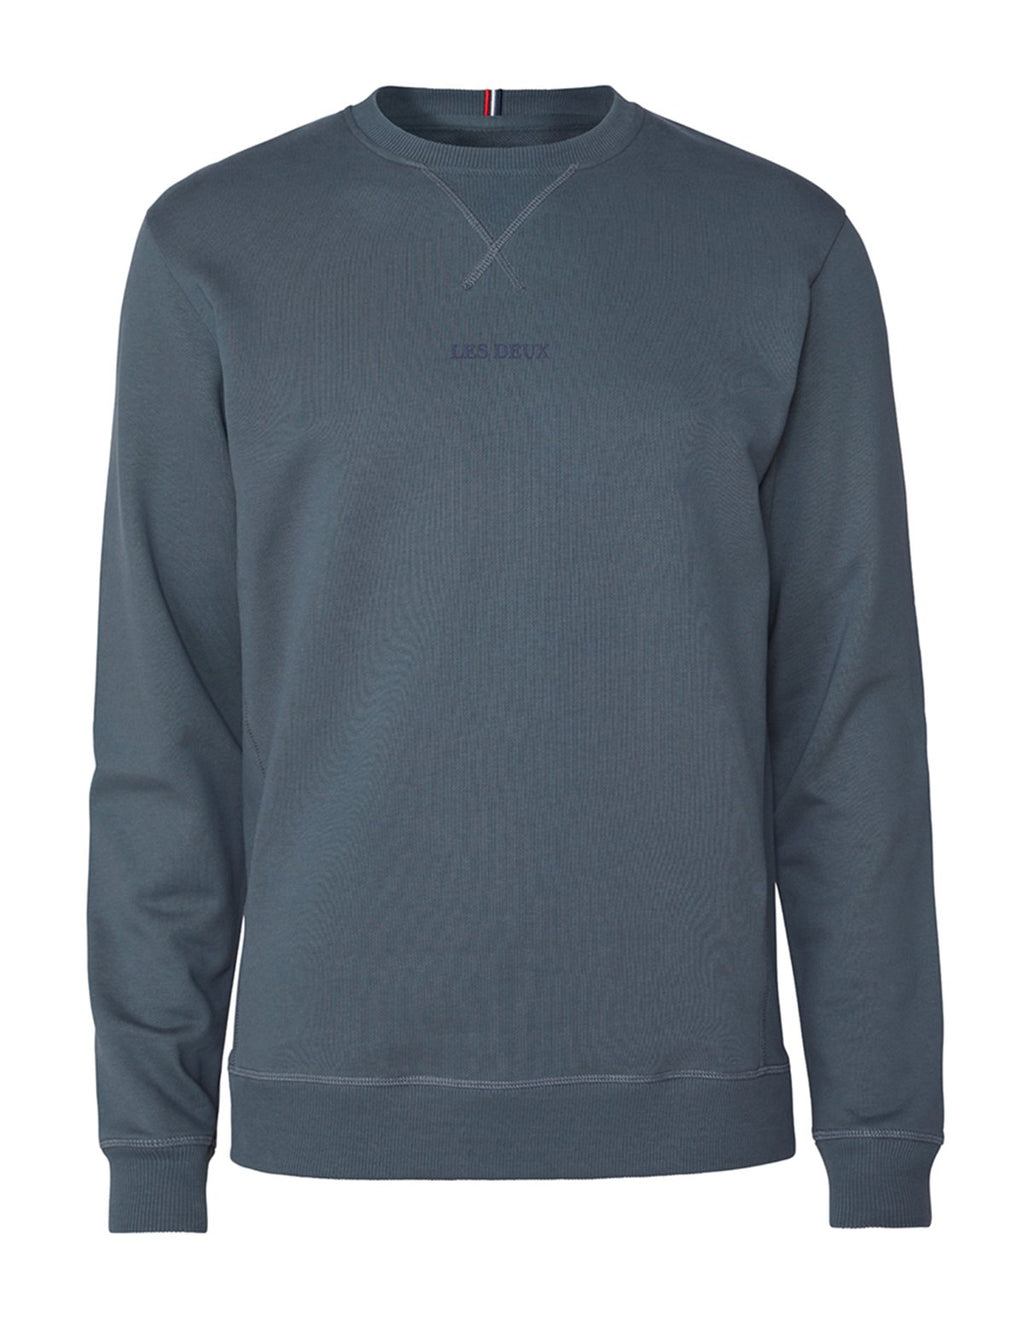 Lens Blue Fog Crew Neck Sweatshirt